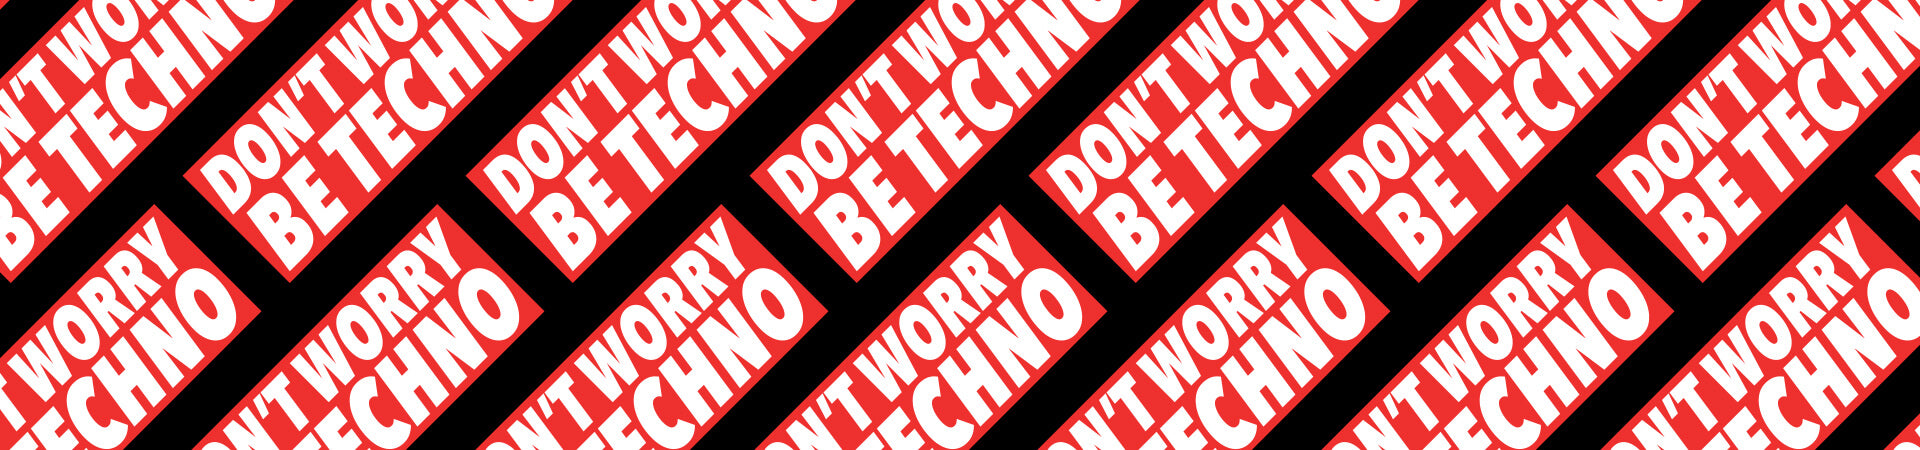 Don't Worry, Be Techno